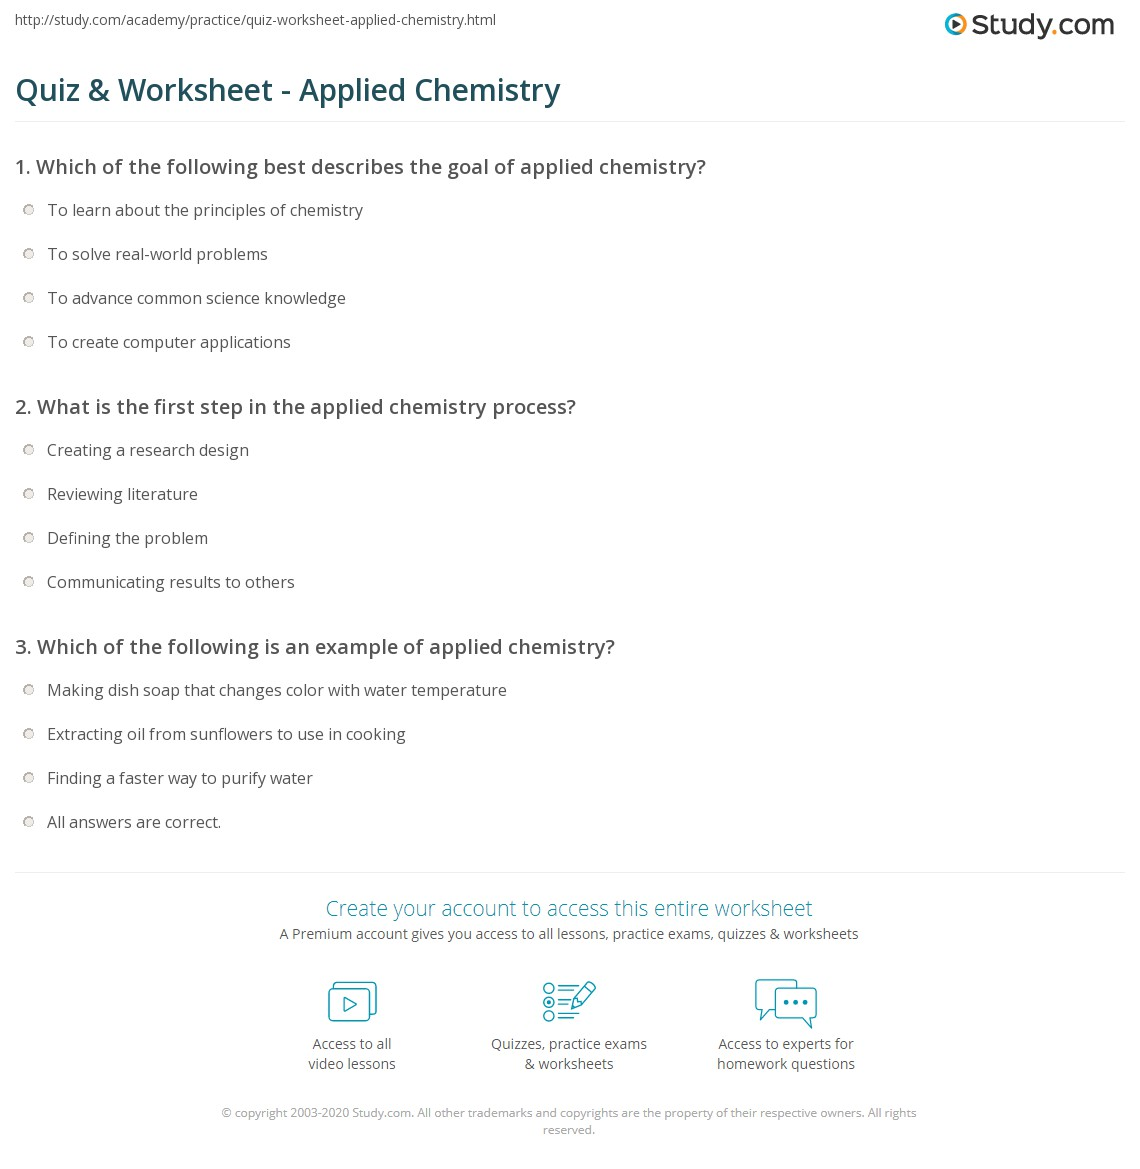 Quiz & Worksheet - Applied Chemistry | Study.com